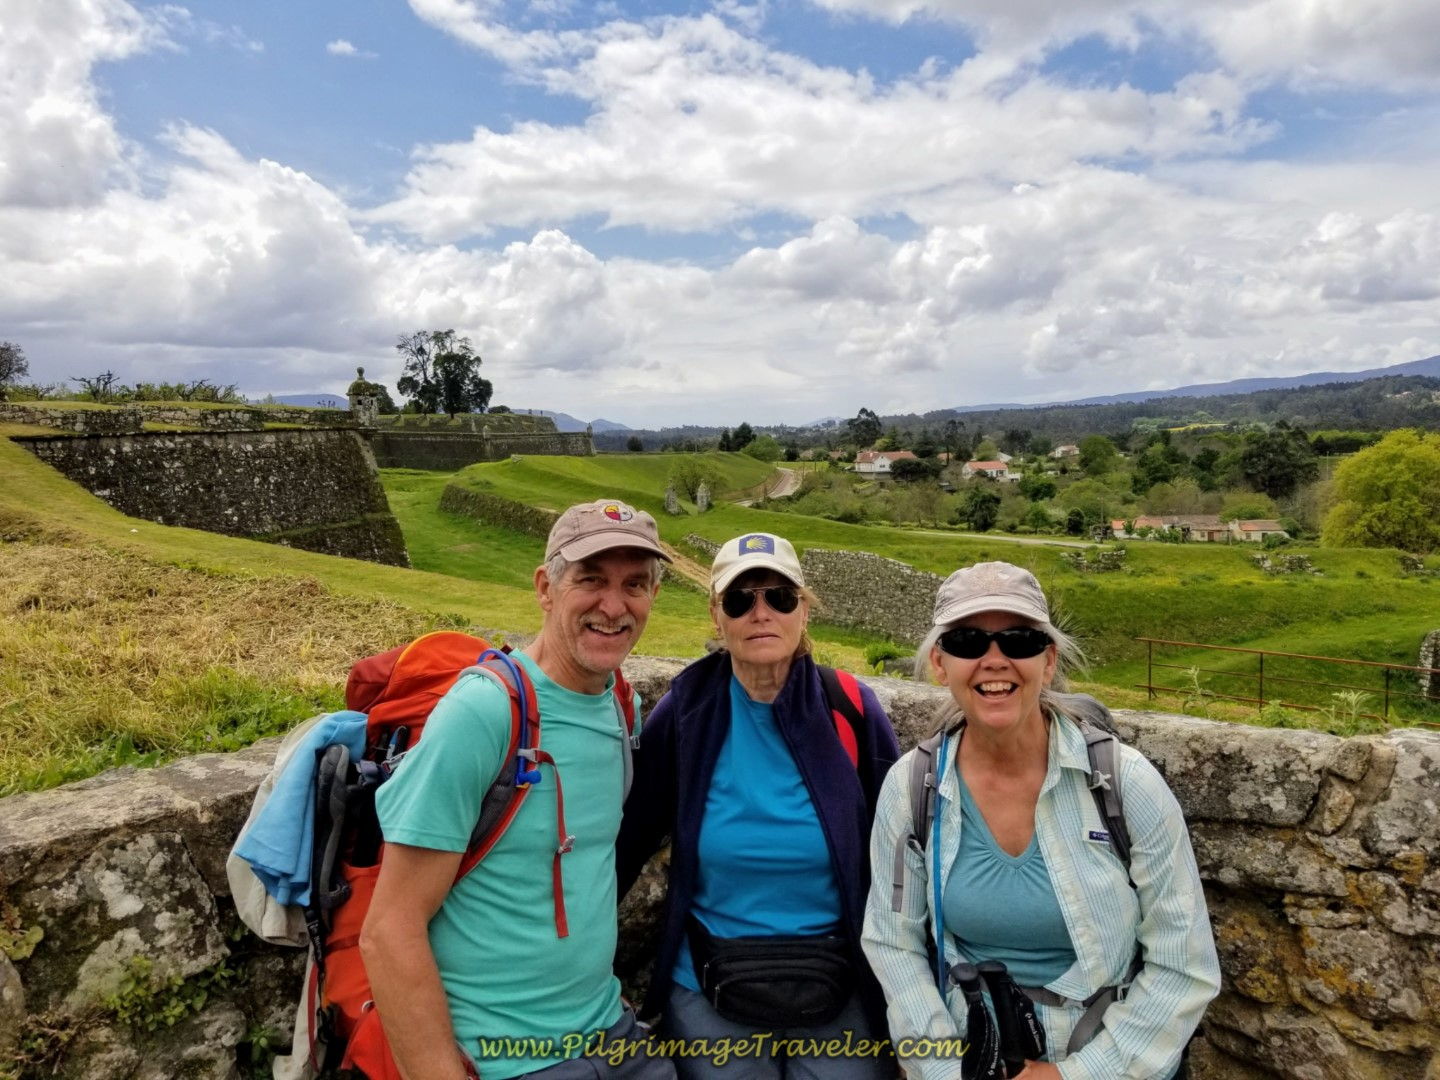 Rich, Glyvia and Elle on Valença's Rampart Walls on day nineteen on the Central Route of the Portuguese Camino